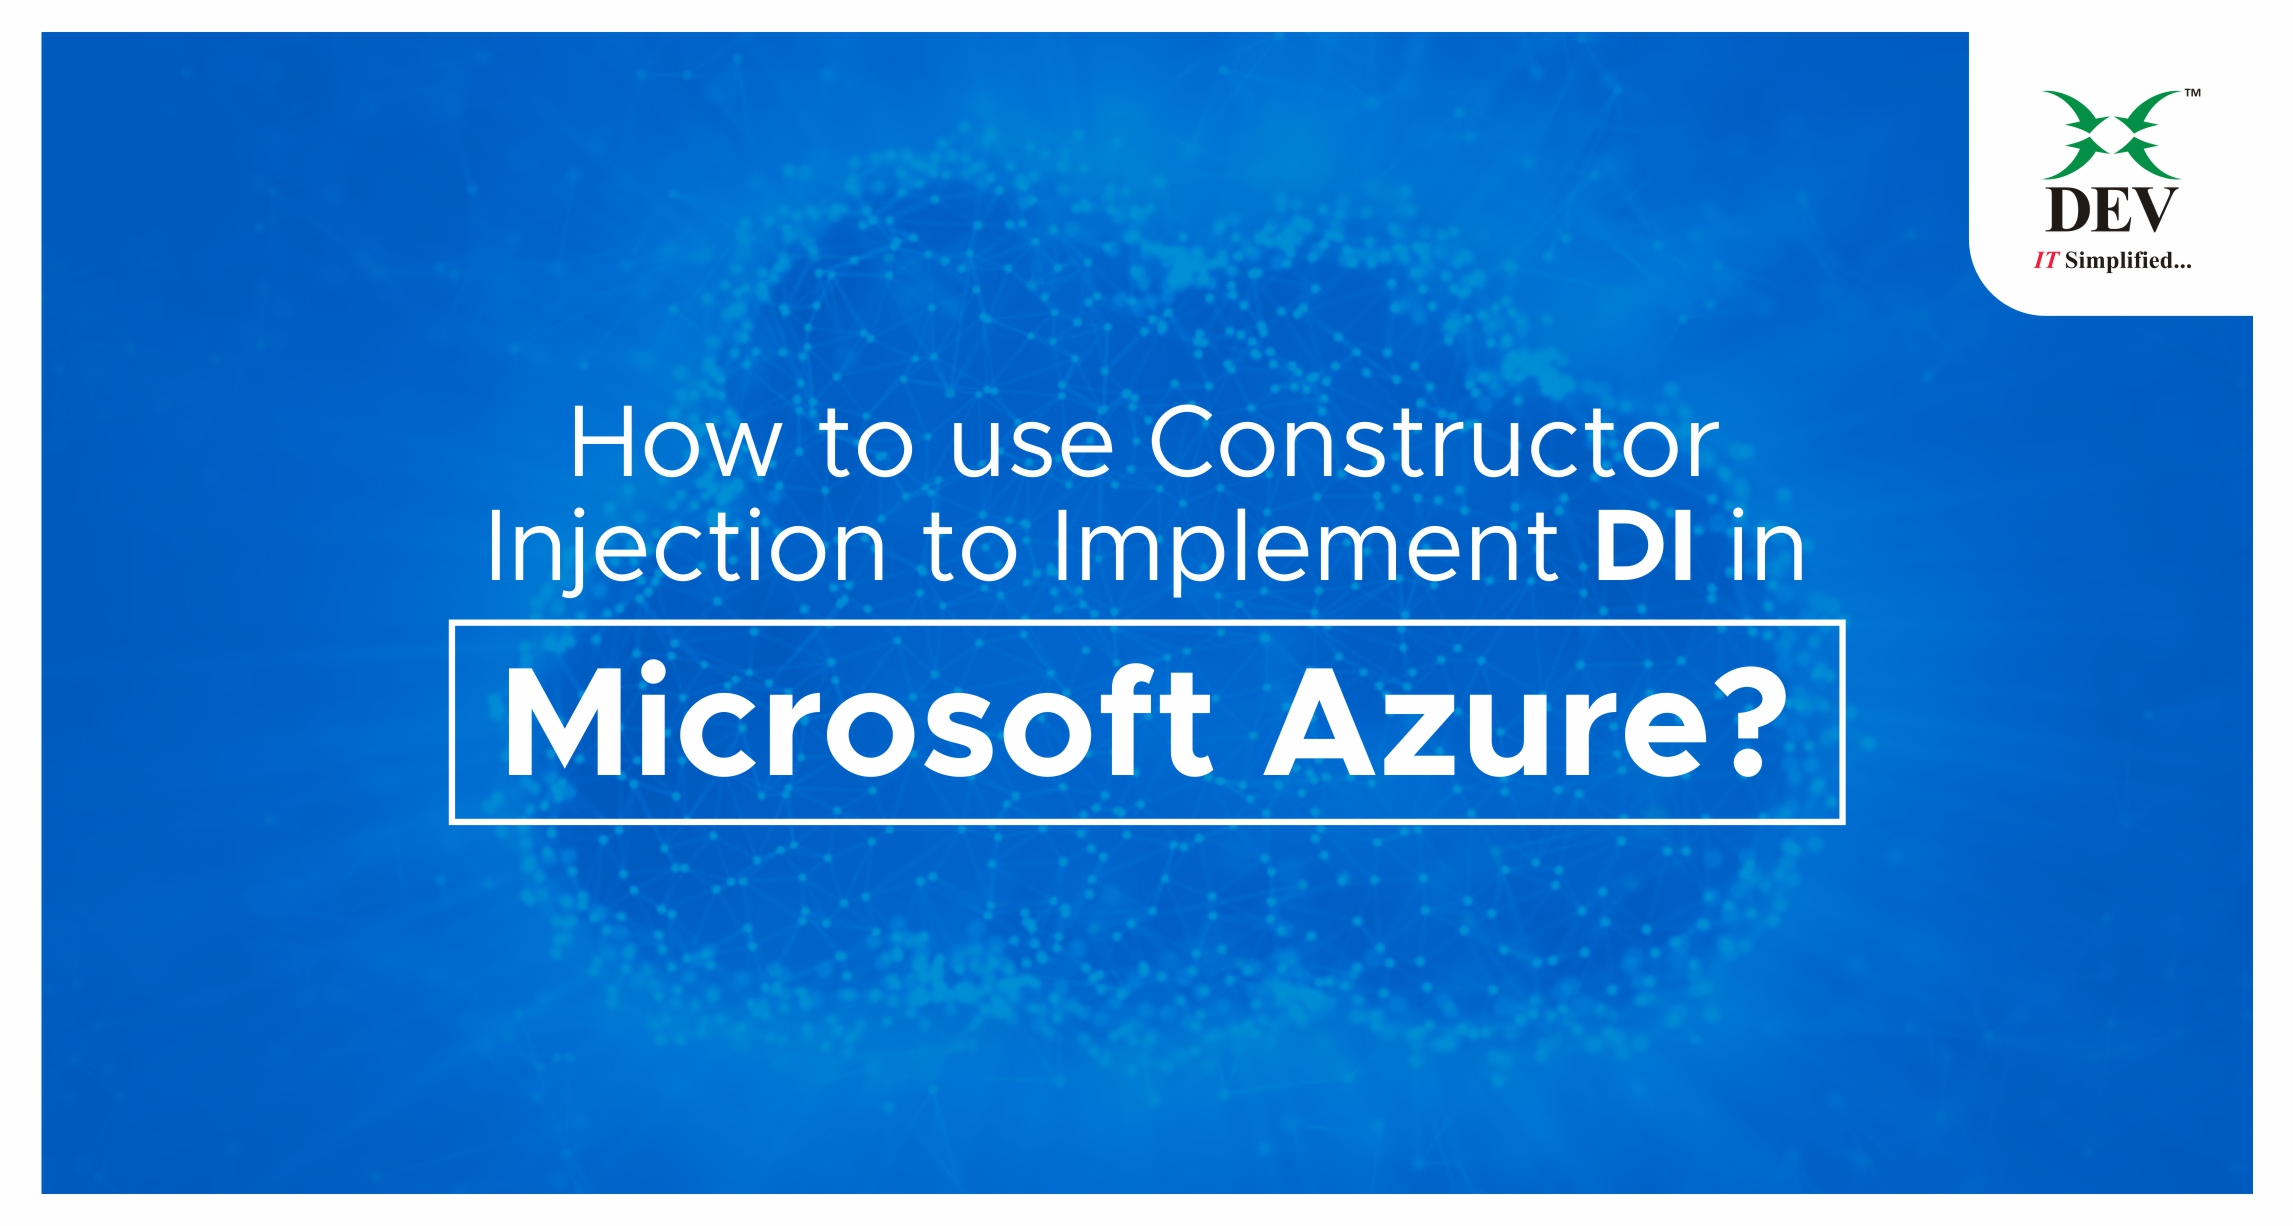 Using Constructor Injection to Implement DI in Microsoft Azure